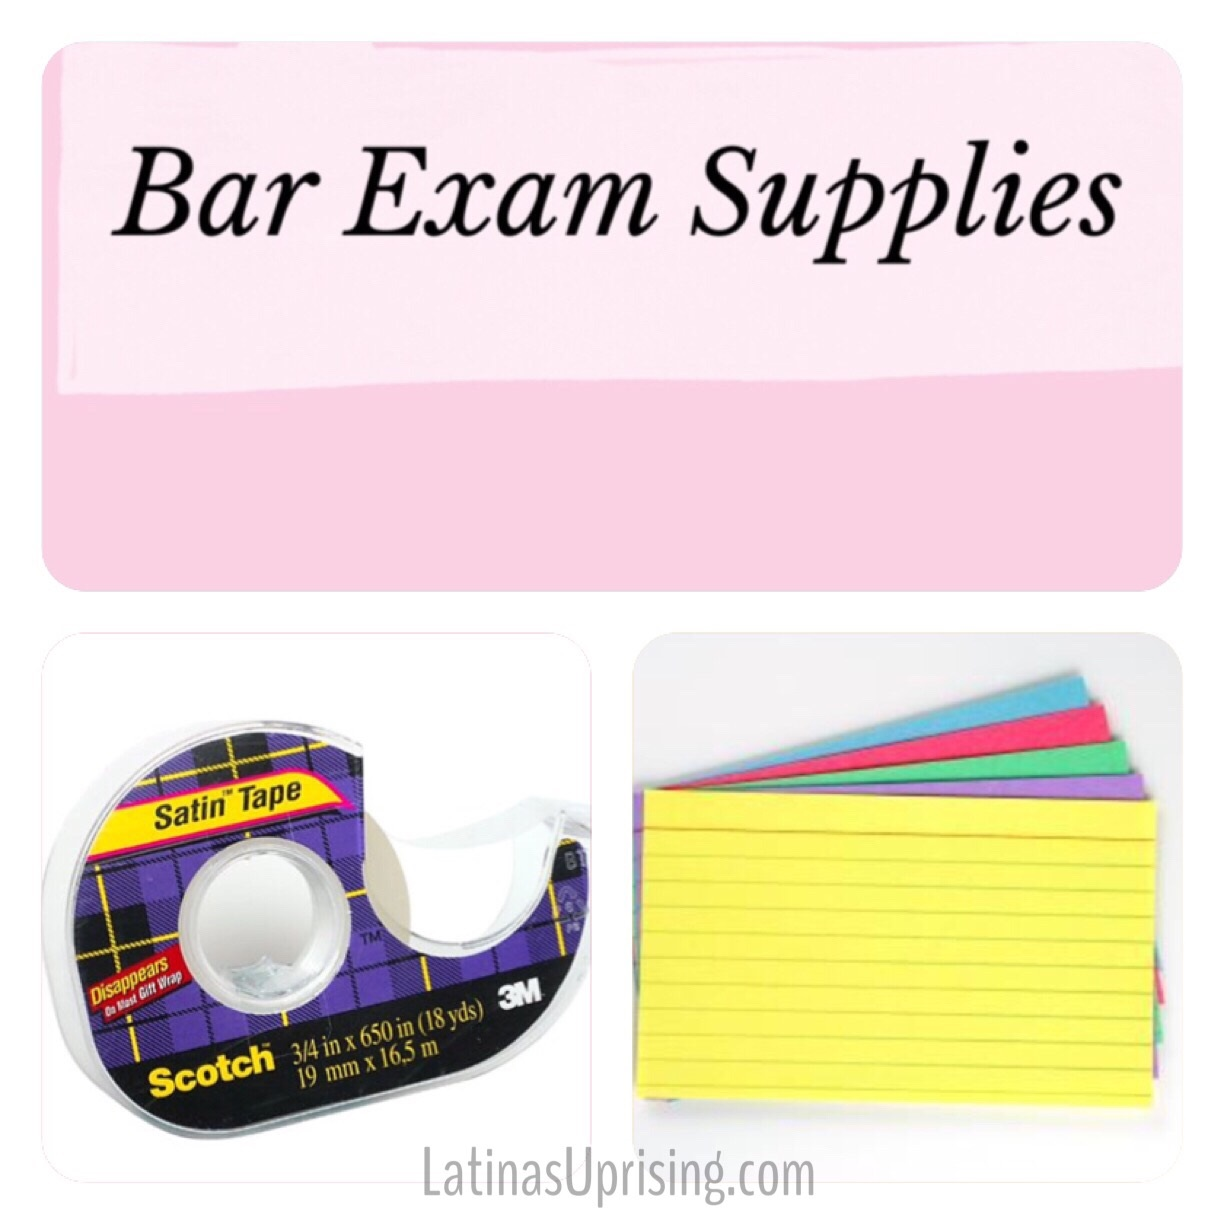 Necessary Study Supplies for Bar Exam – Latinas Uprising